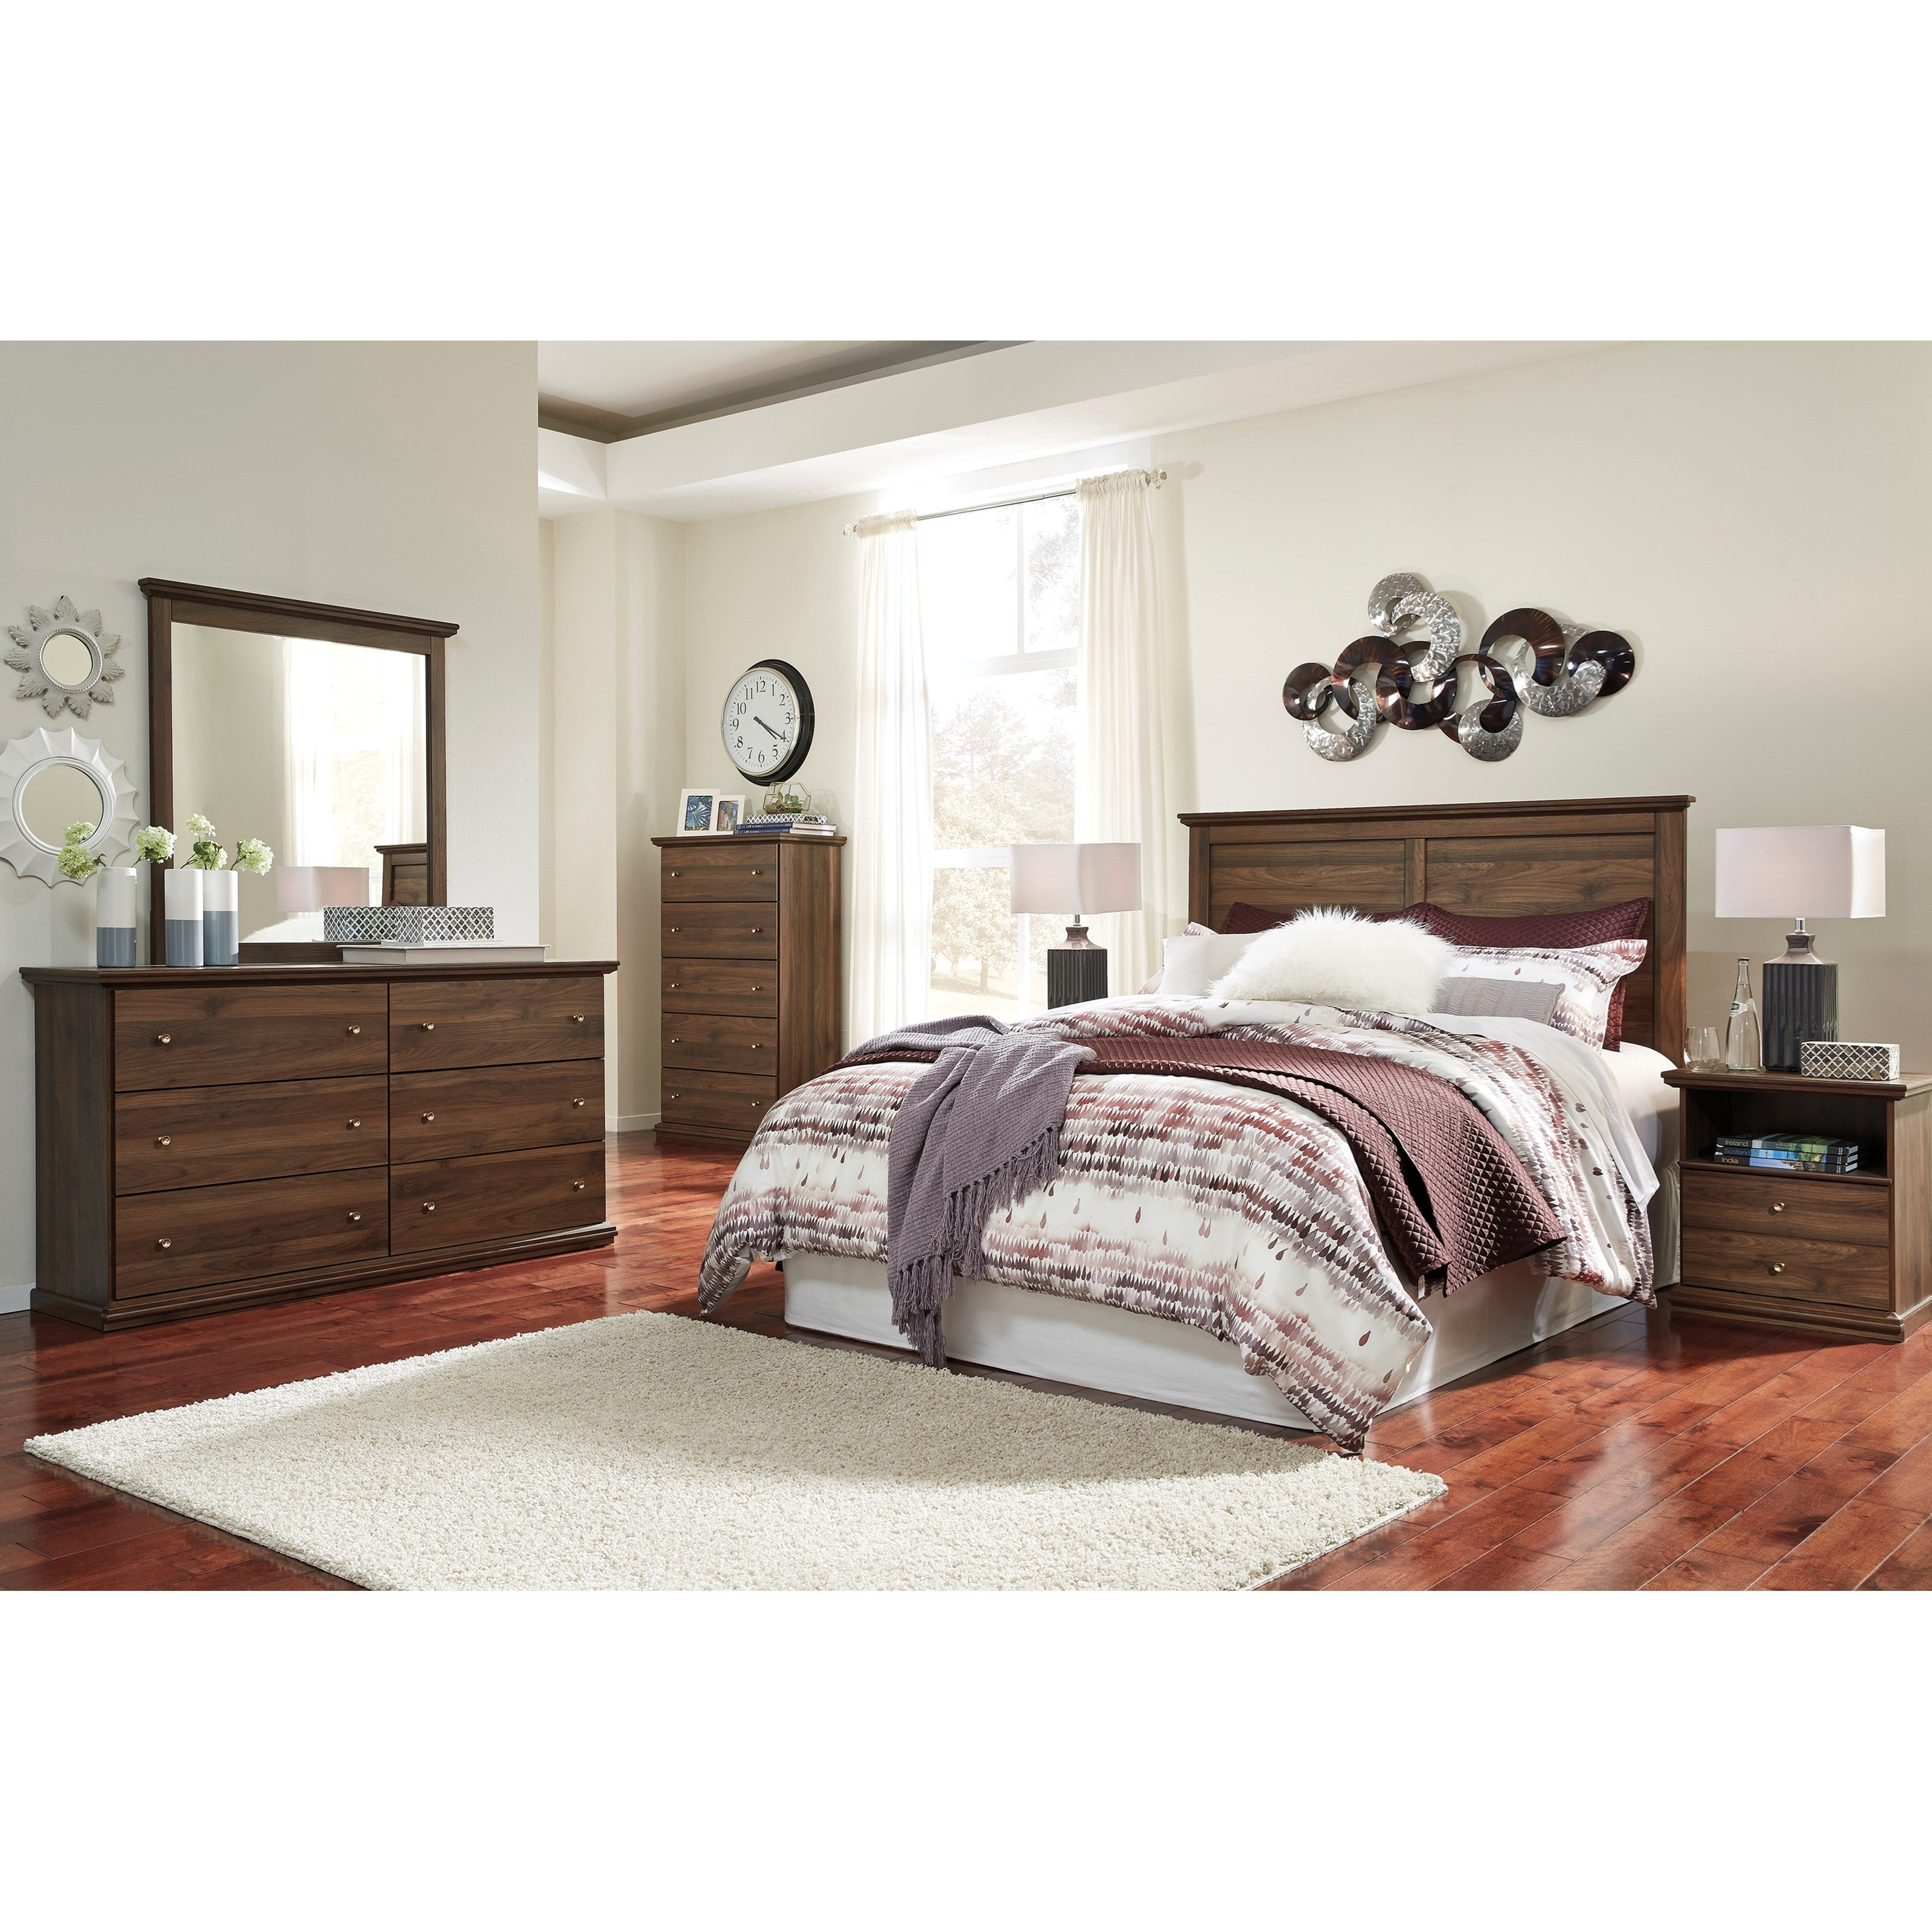 Signature Design by Ashley Burminson Queen Bedroom Group - Item Number: B135 Q Bedroom Group 4